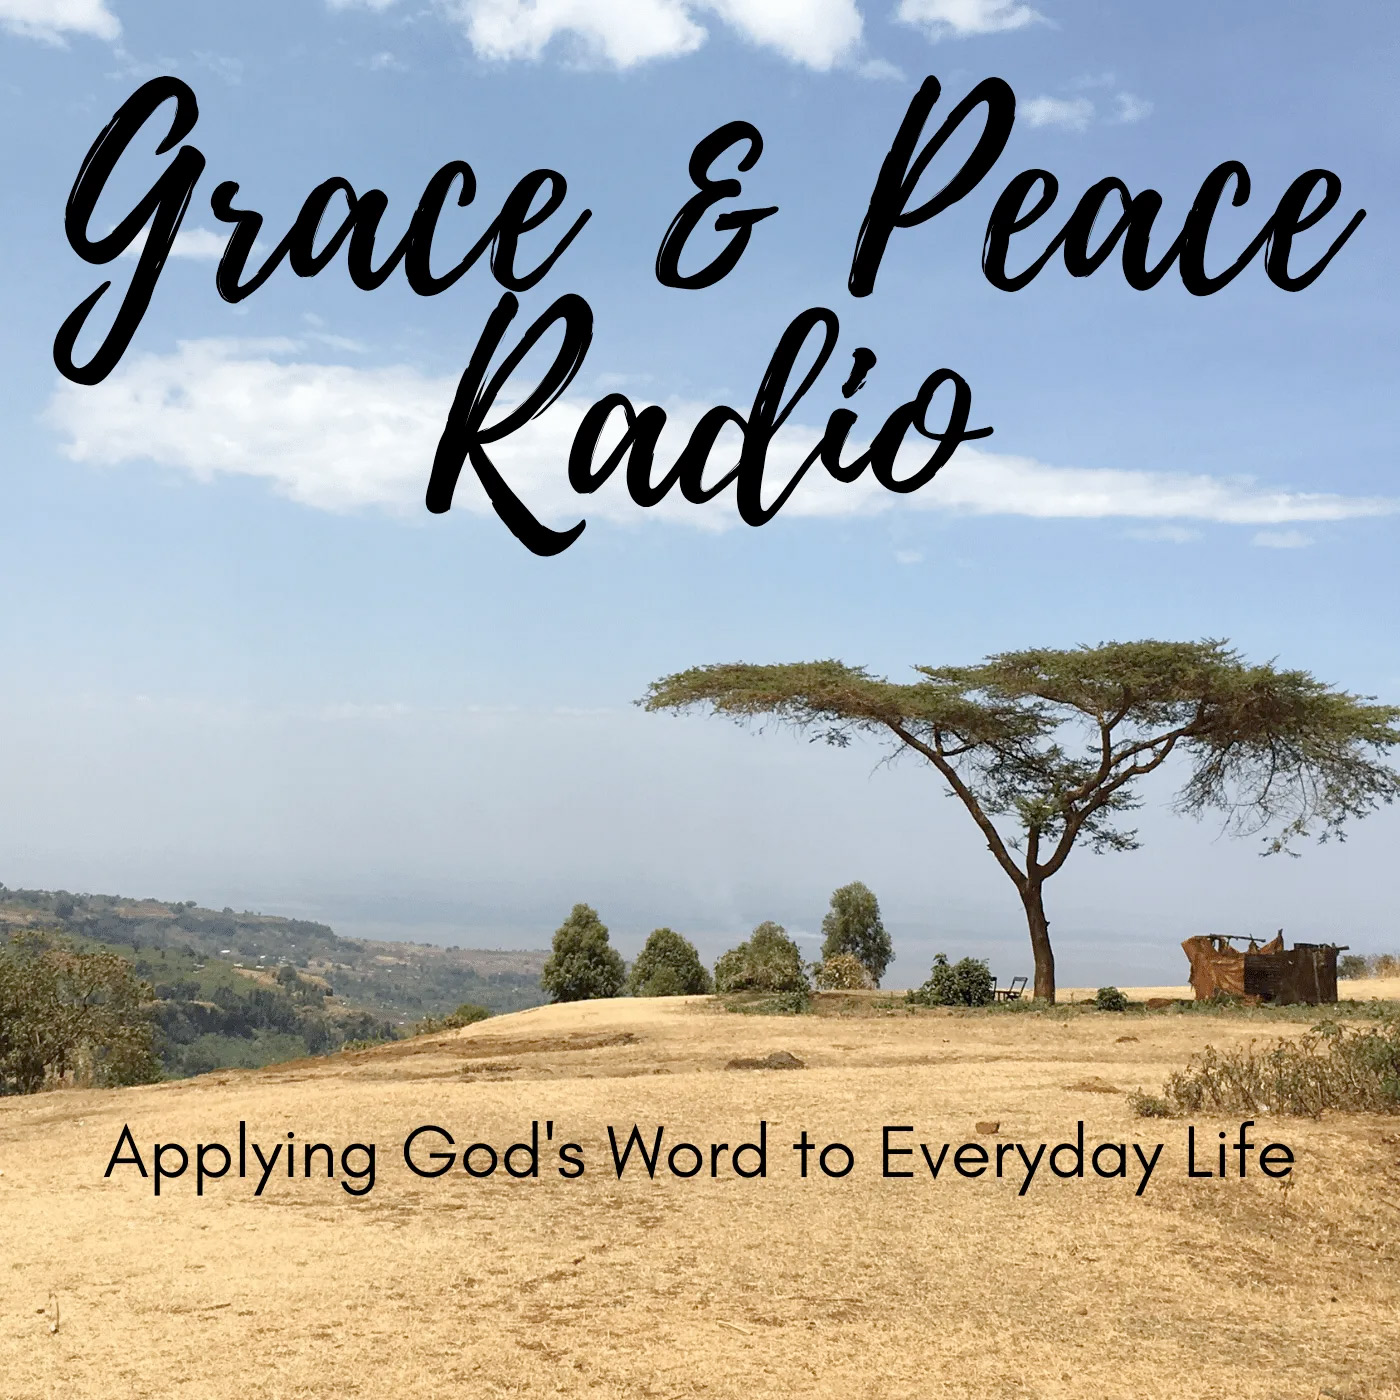 Finding Great Christian Audiobook Resources